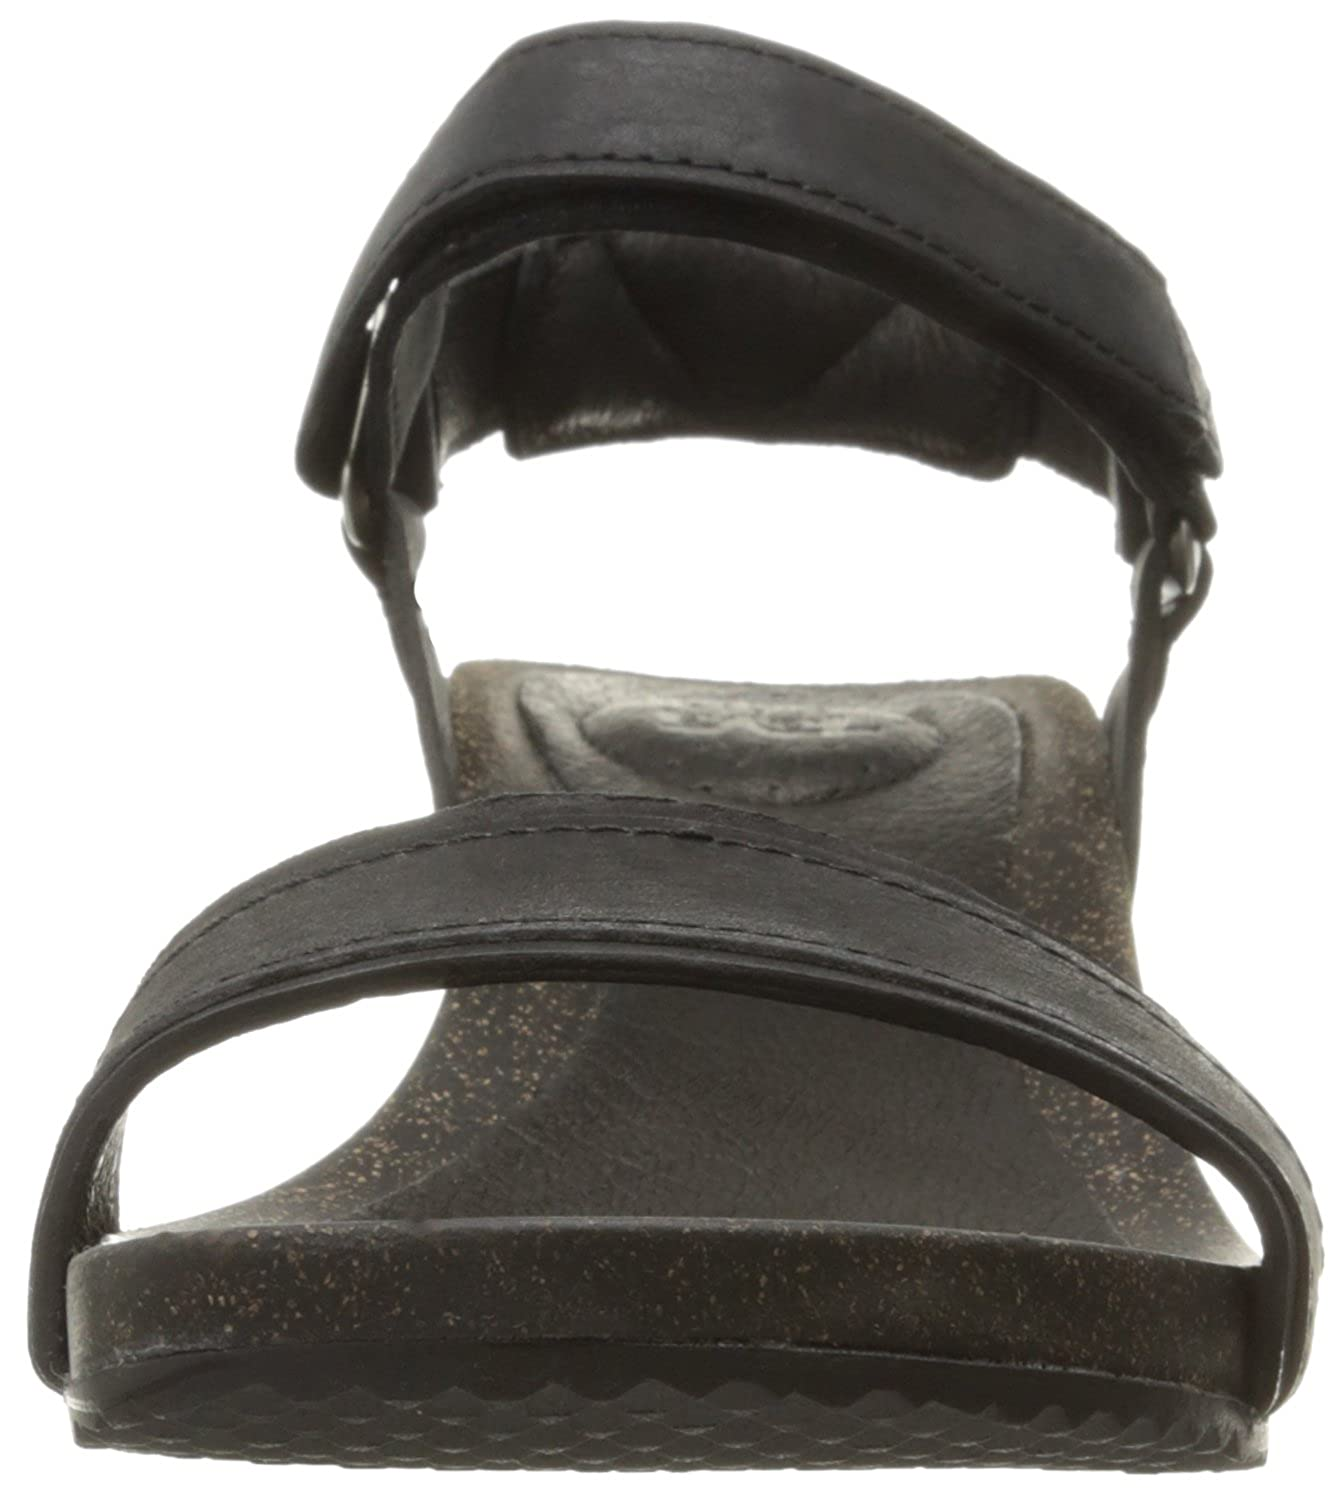 Teva Ysidro Stitch Wedge Sandals Women | Black Schuhgröße US 5 | Women EU 36 2018 Sandalen 571a2d